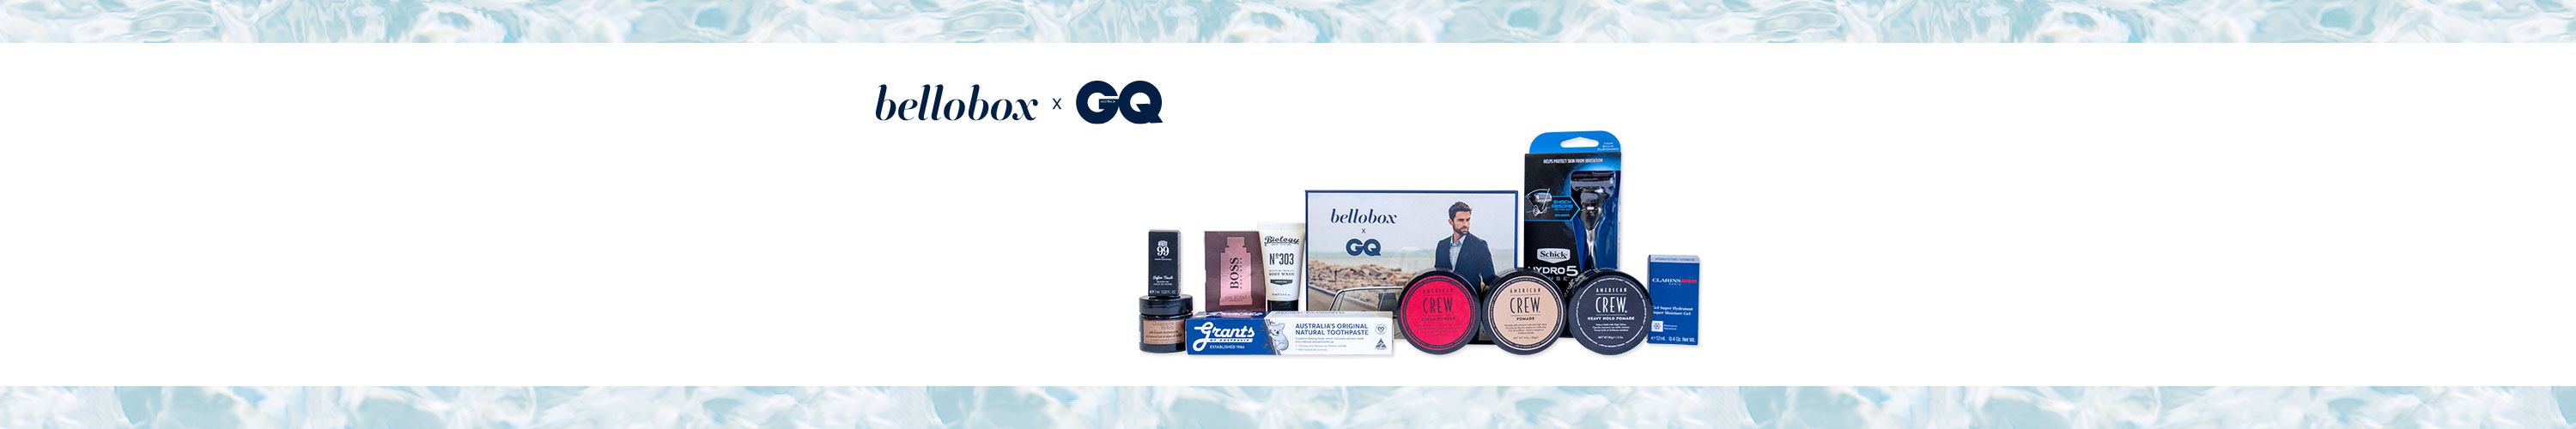 bellabox x gq